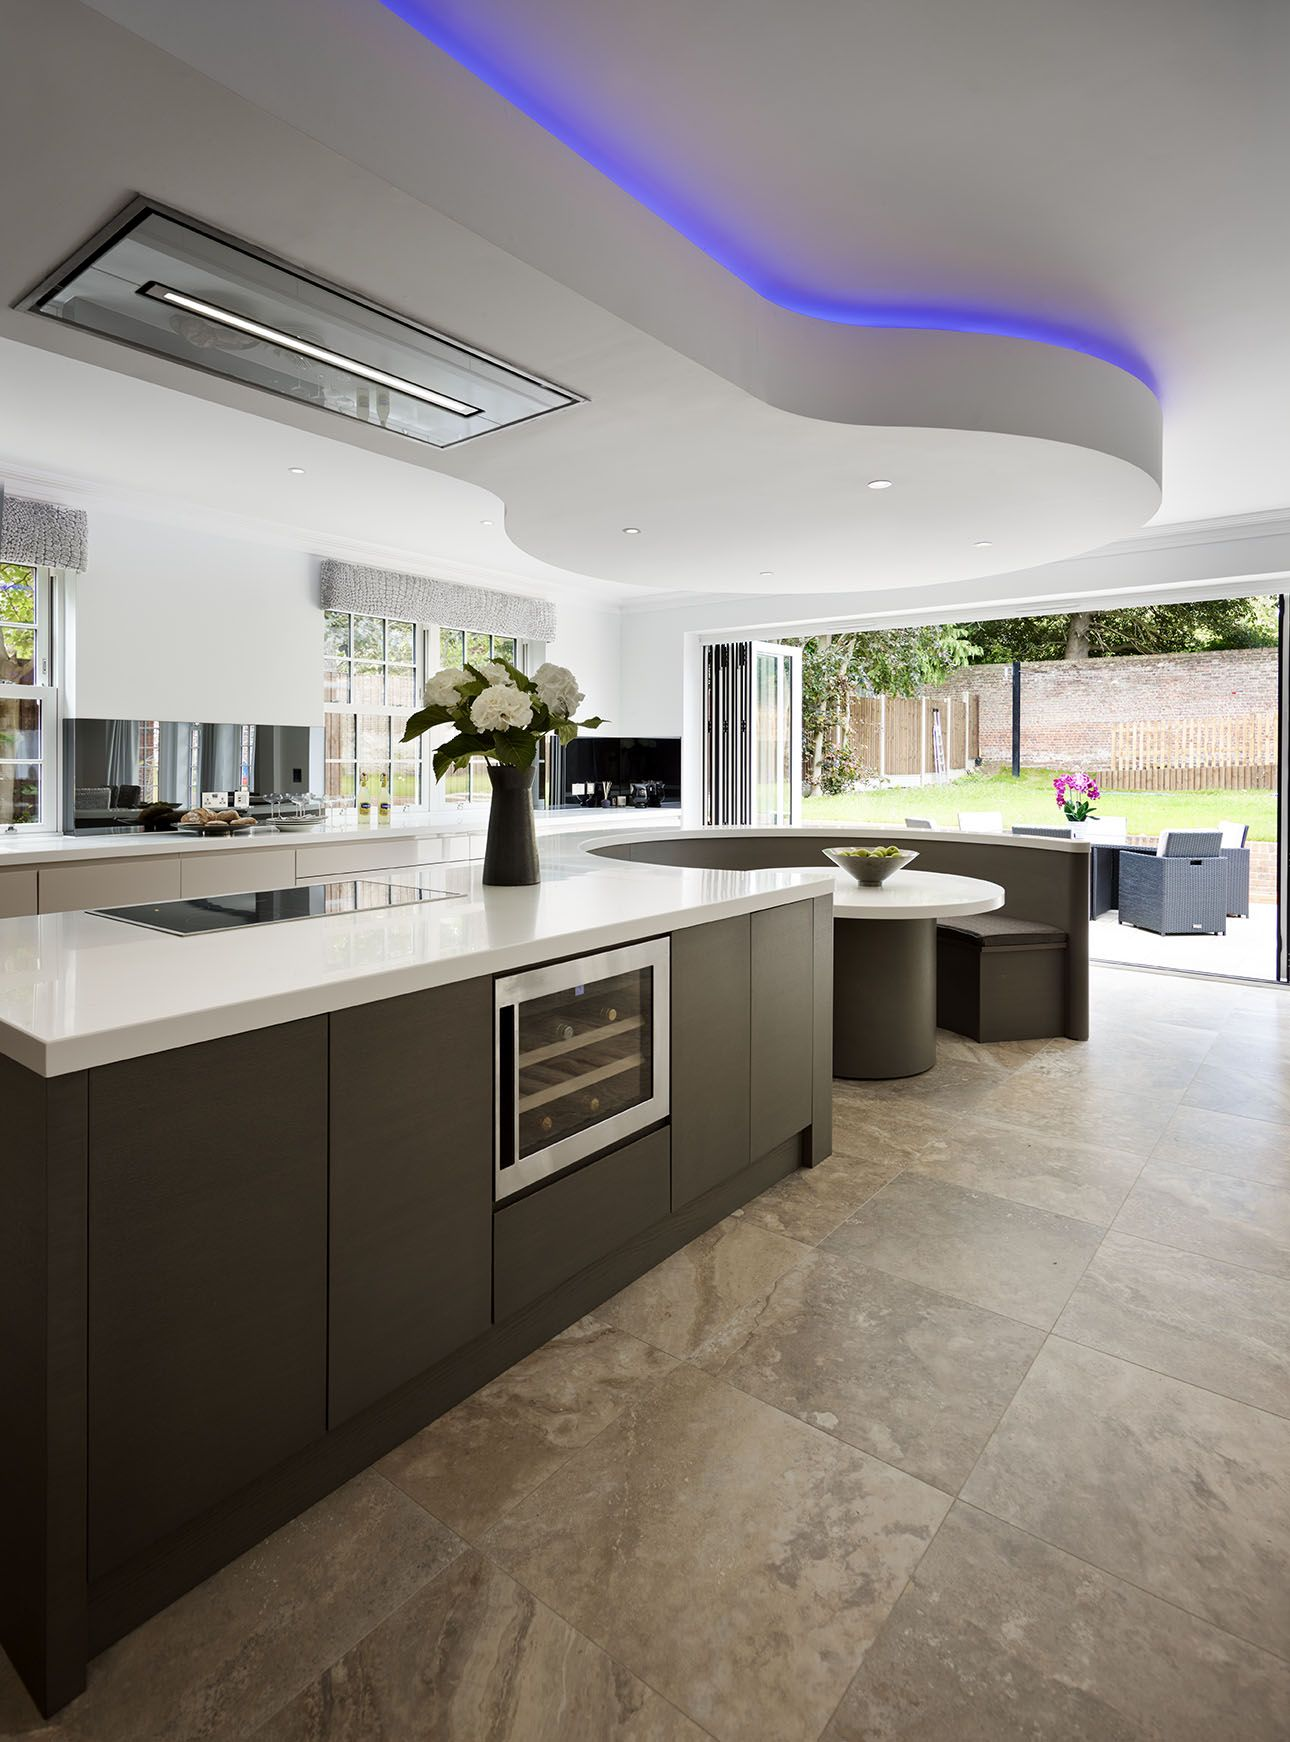 High End Kitchen Design We Were Asked To Design A High End Kitchen For A New Build Project